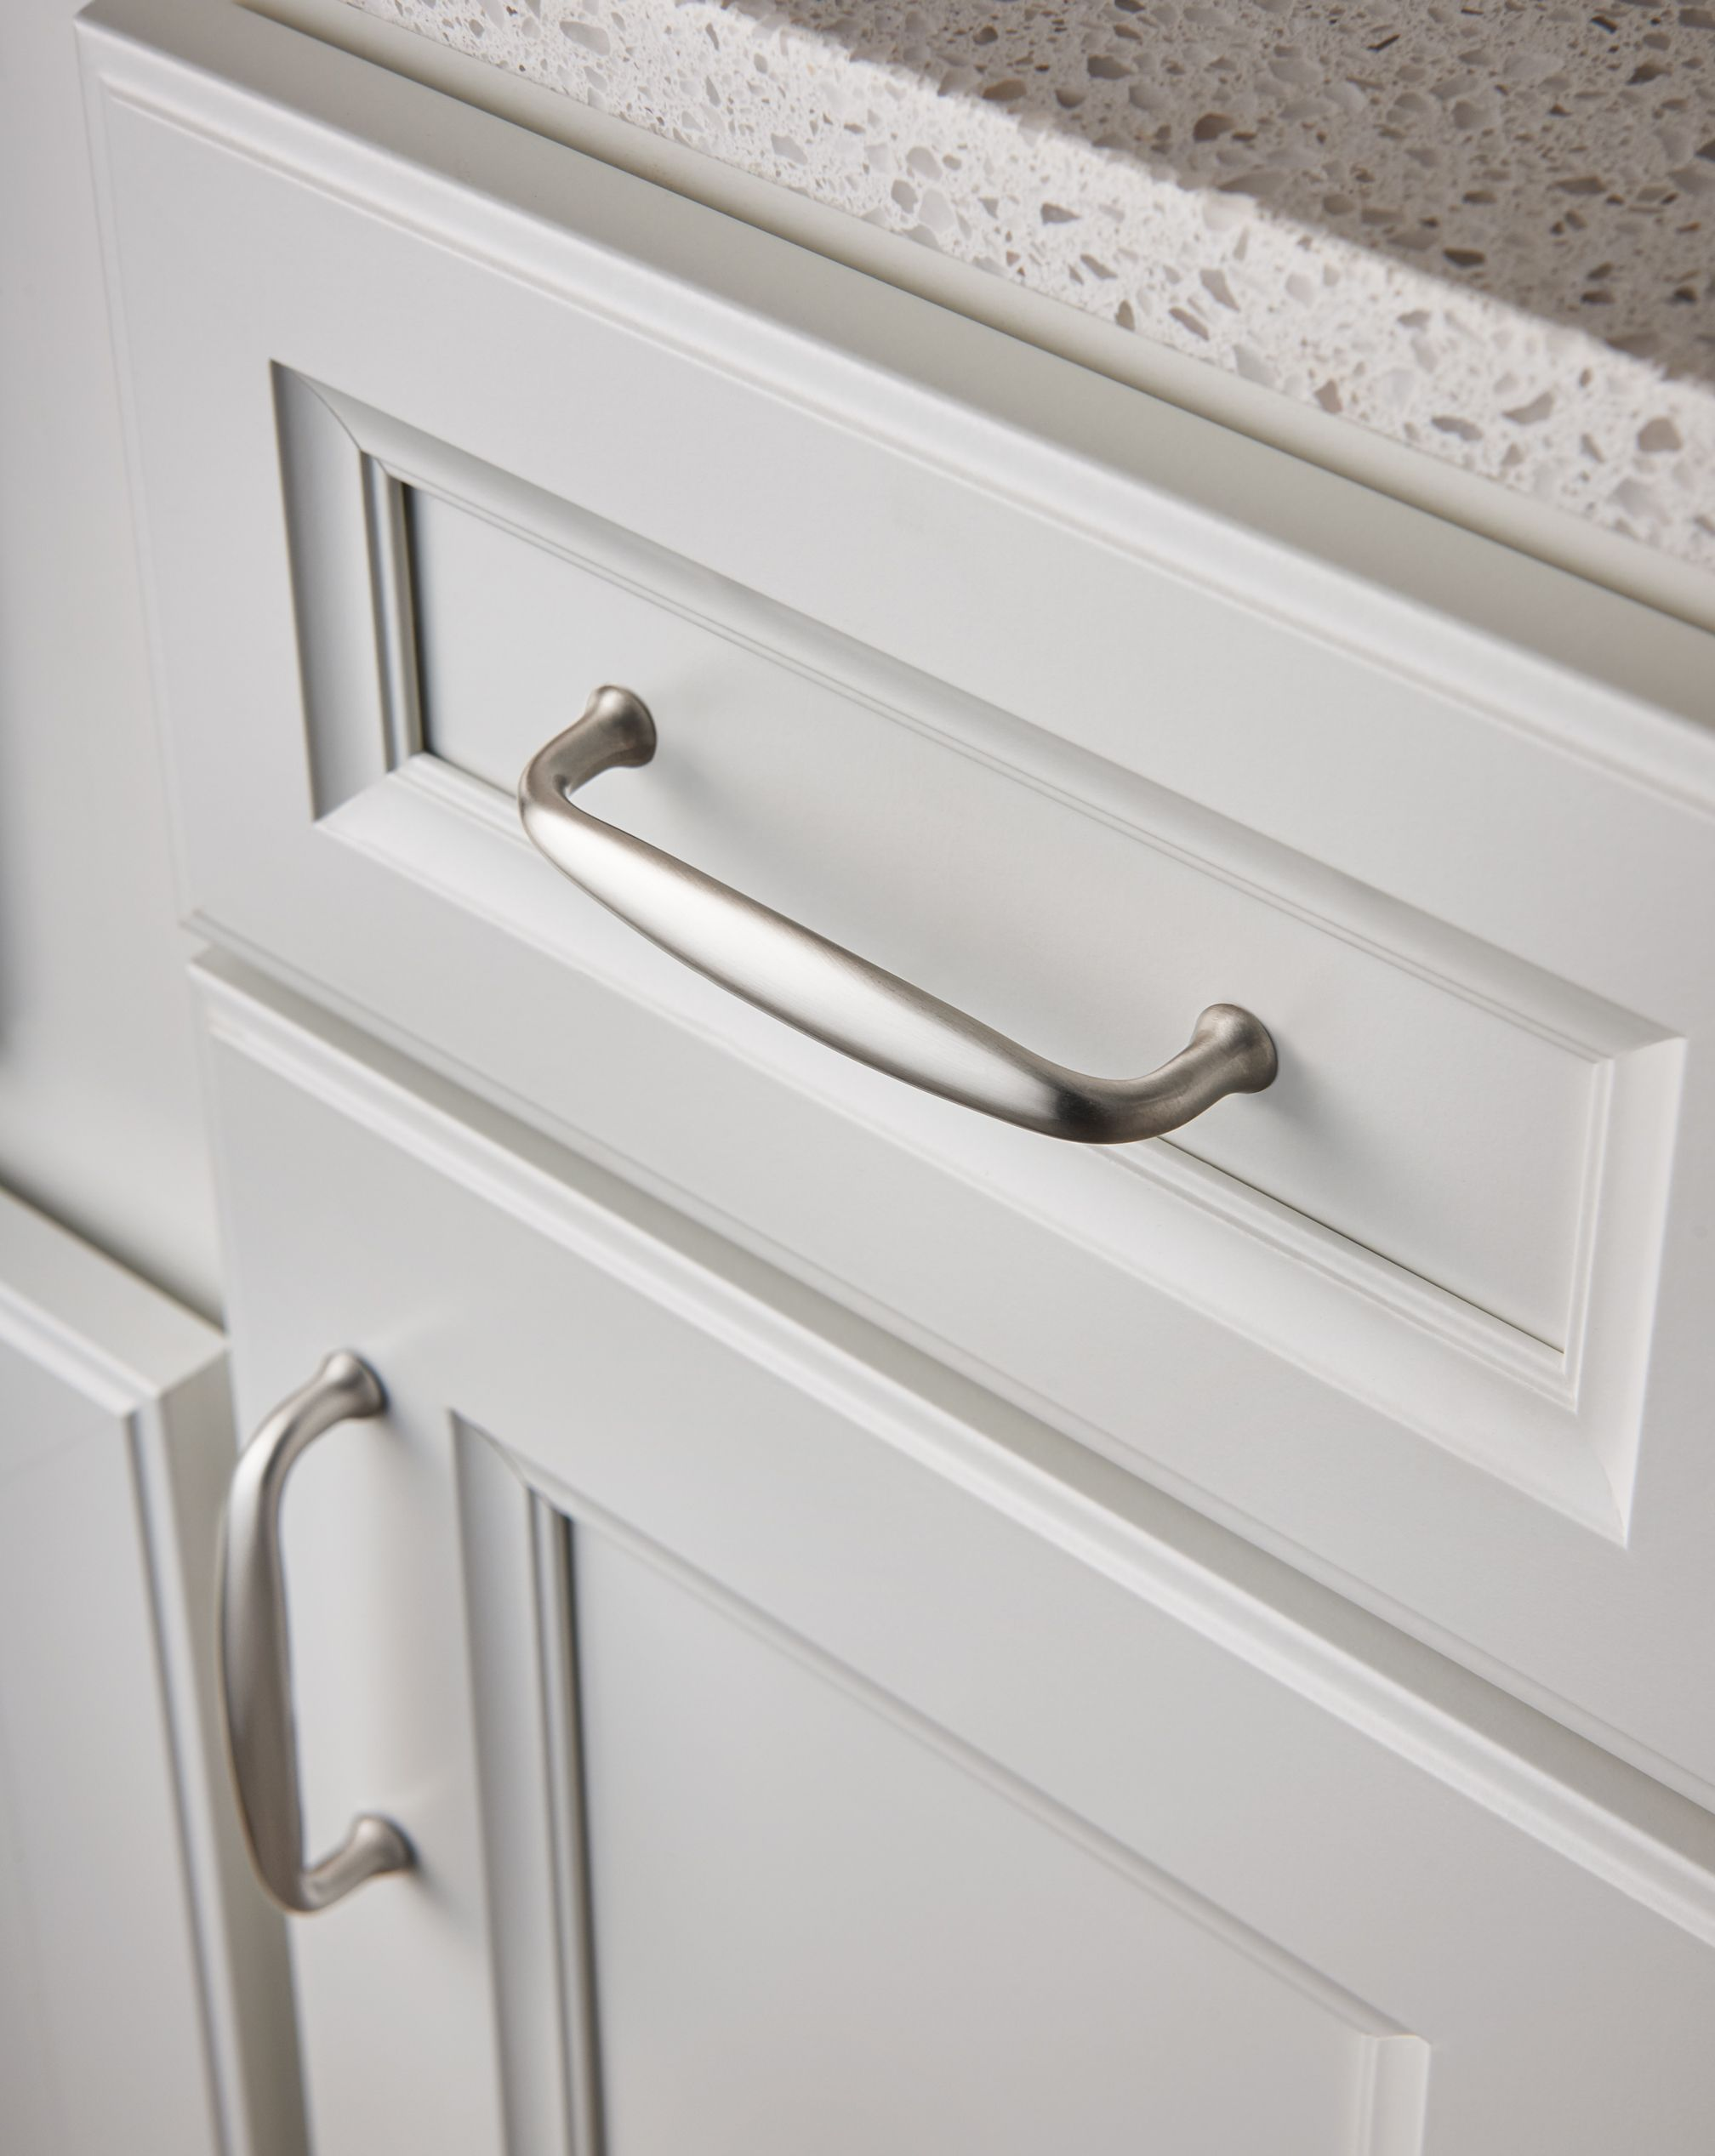 M1279 4 Cc Pull In Brushed Satin Nickel Kitchen Cabinet